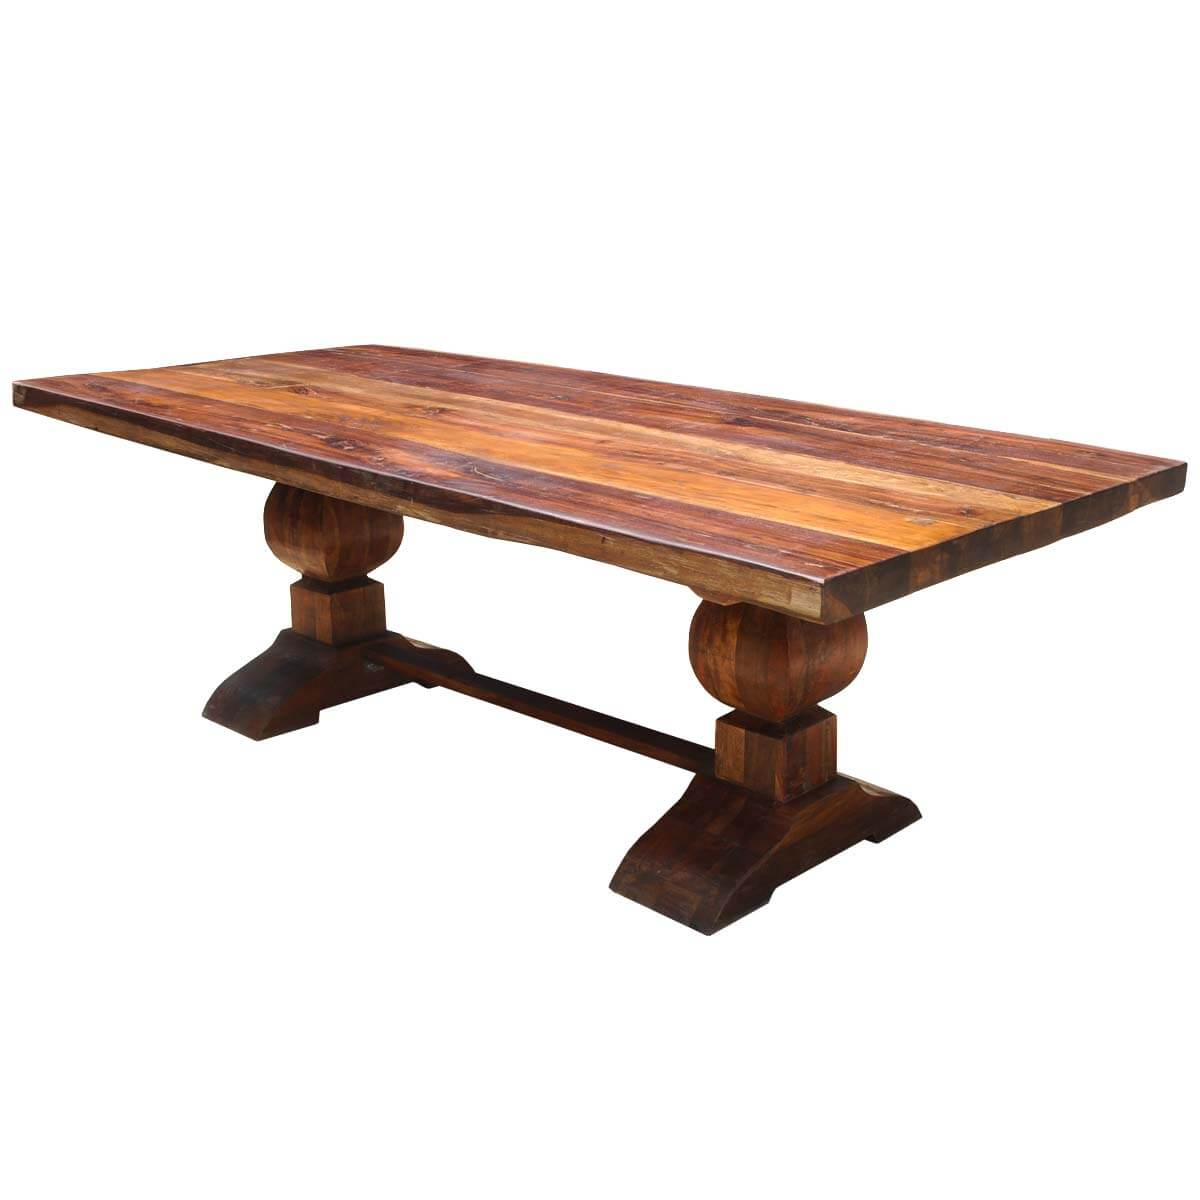 Large rustic reclaimed wood double trestle pedestal dining for Pedestal dining table